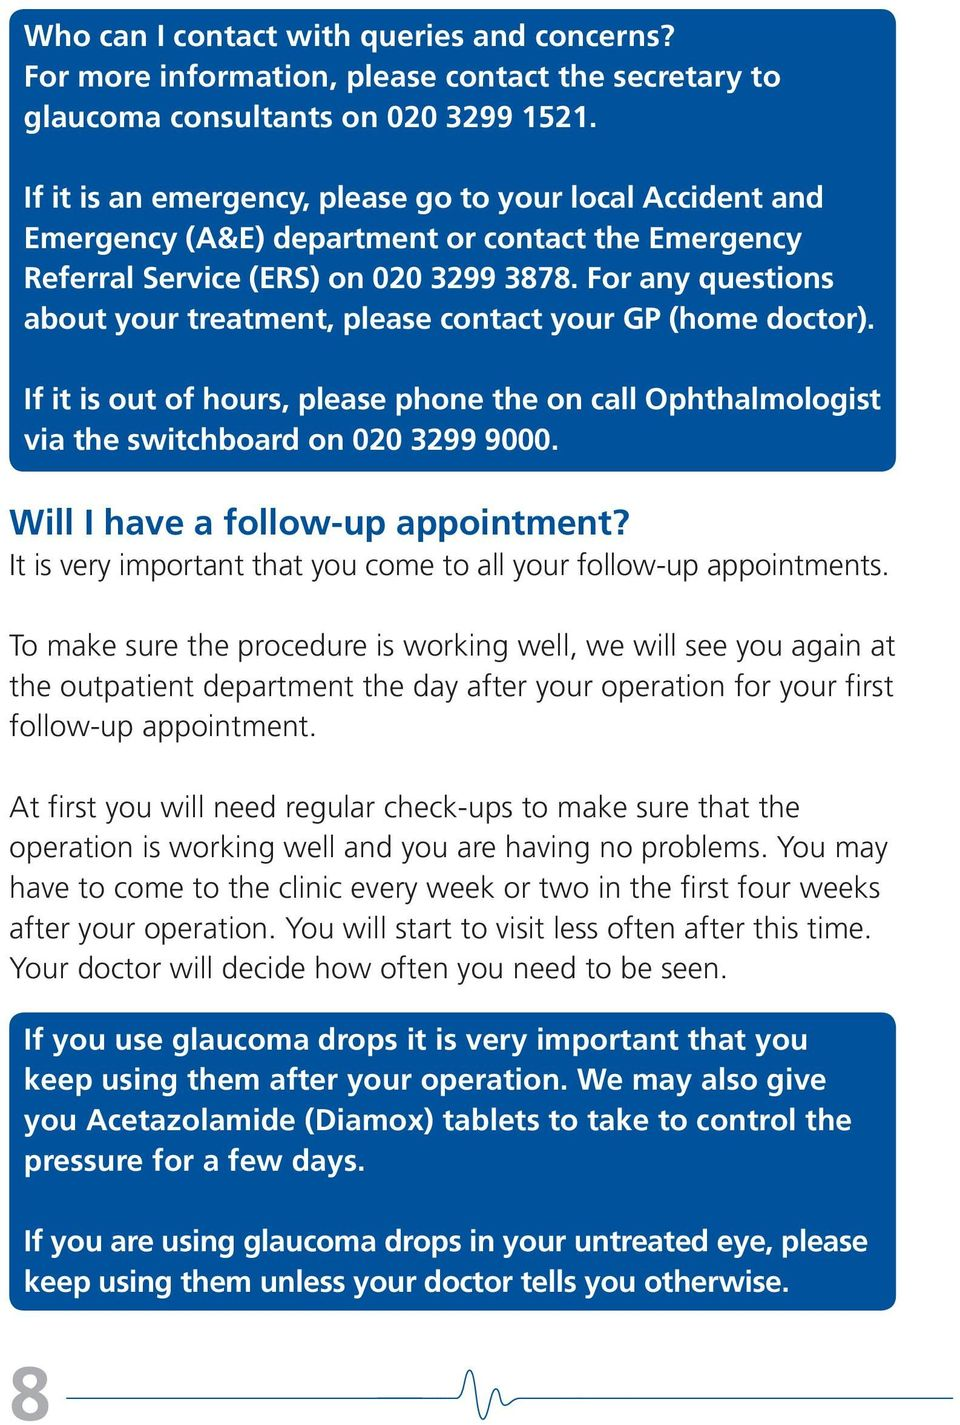 For any questions about your treatment, please contact your GP (home doctor). If it is out of hours, please phone the on call Ophthalmologist via the switchboard on 020 3299 9000.